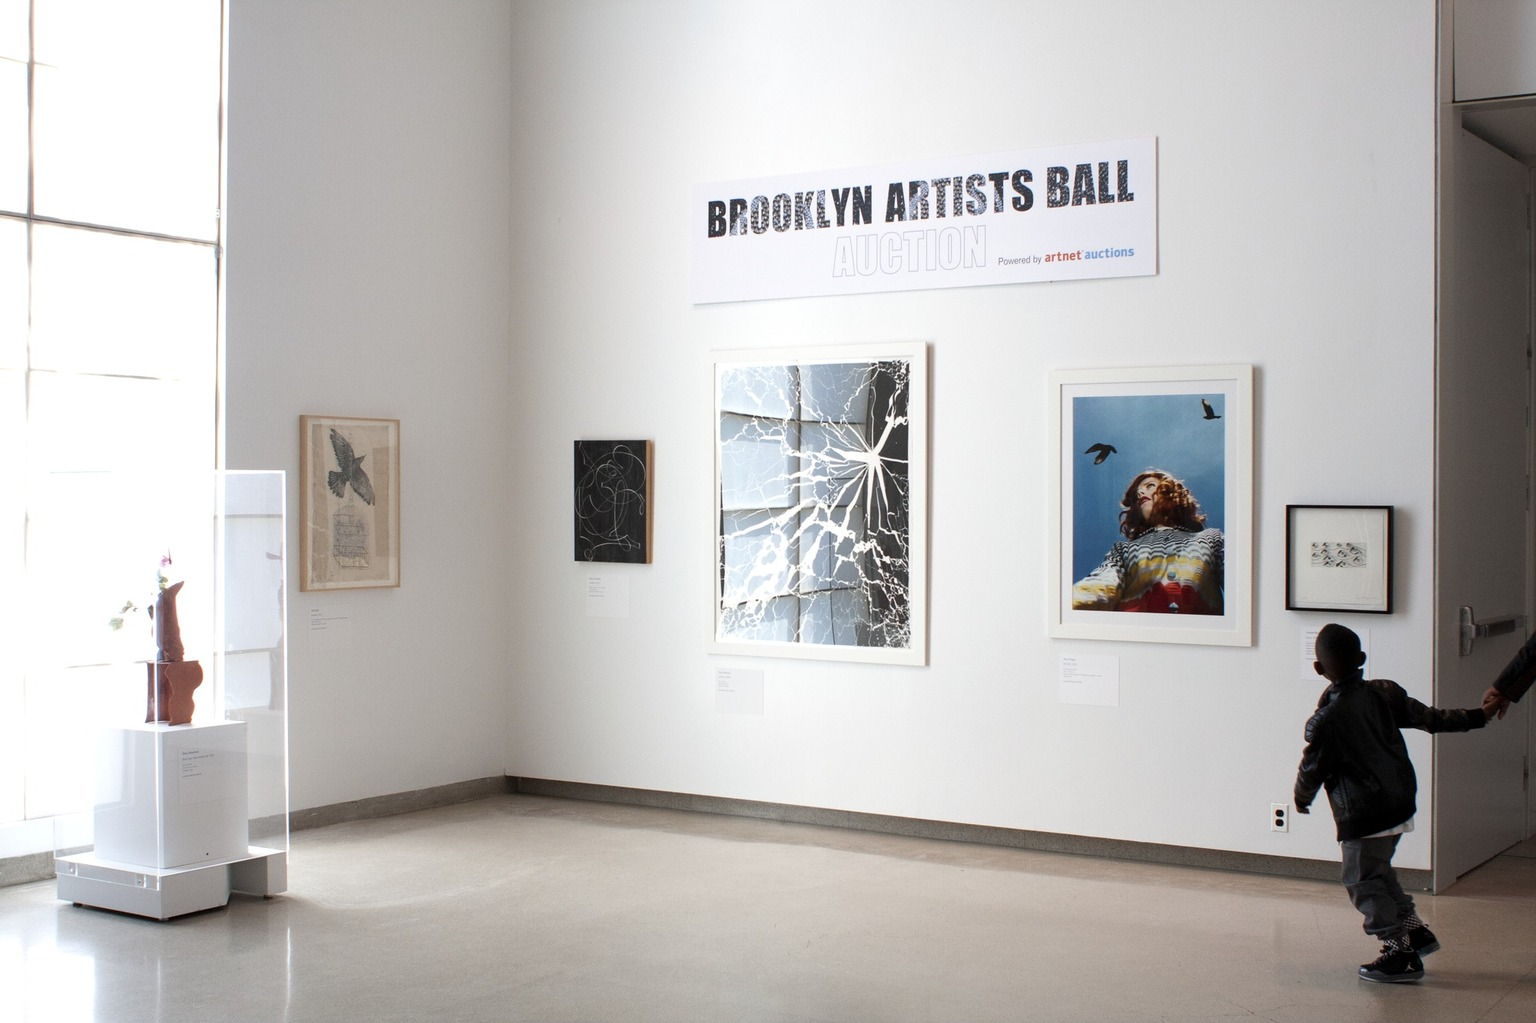 Brooklyn Museum: The Brooklyn Artists Ball Auction